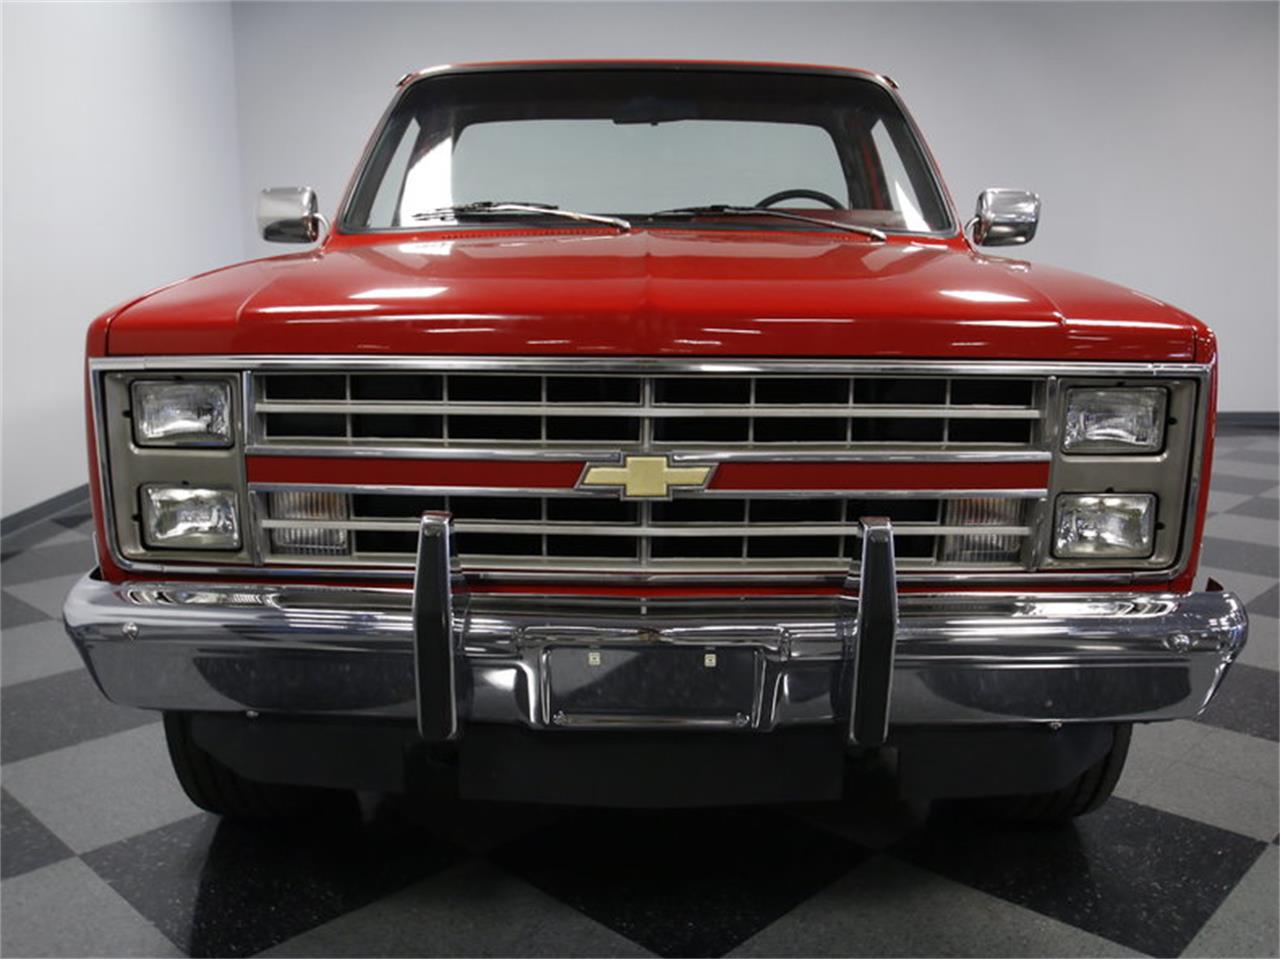 Large Picture of 1985 K-10 located in Concord North Carolina - $26,995.00 - LS4D